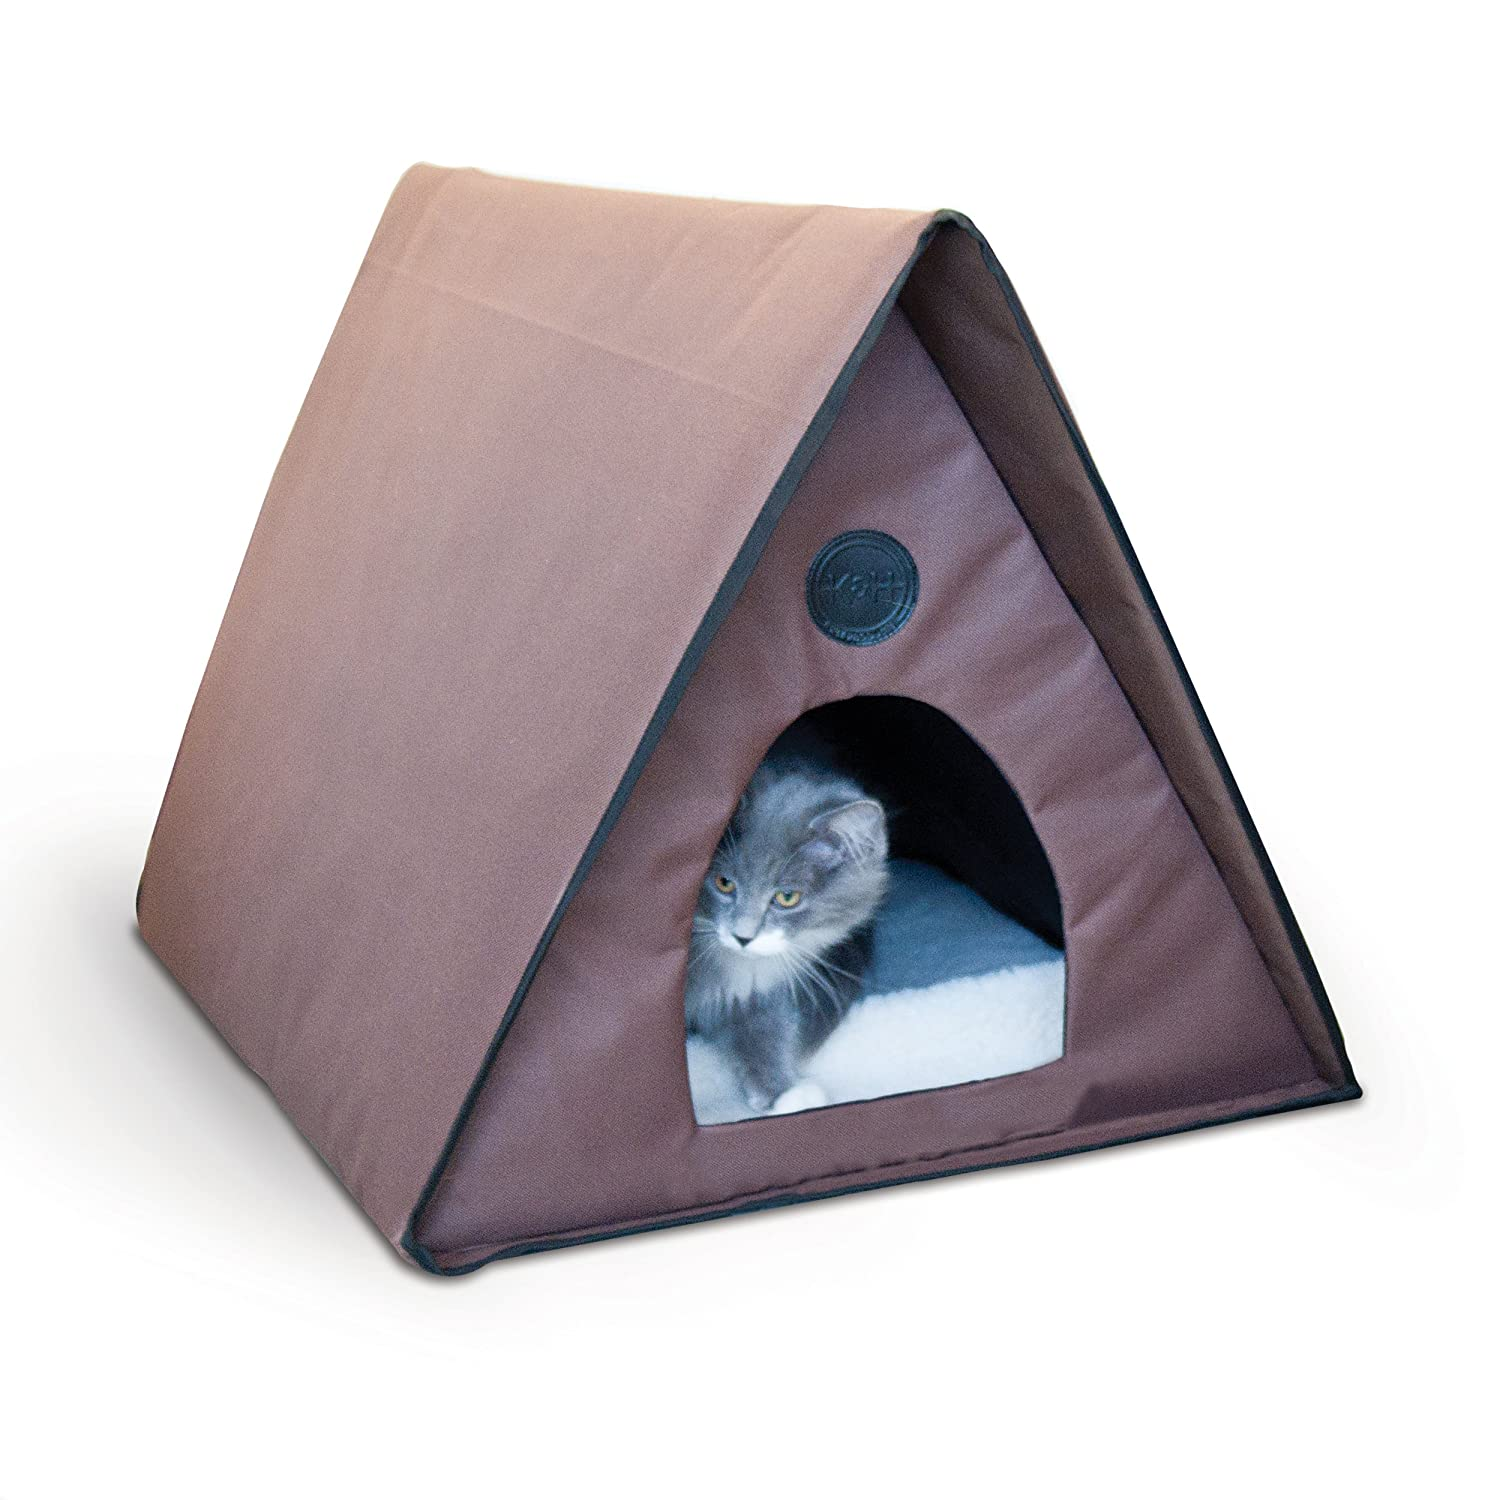 K&H Pet Products Outdoor Multi-Kitty A-Frame Chocolate 35 X 20.5 X 20 Inches